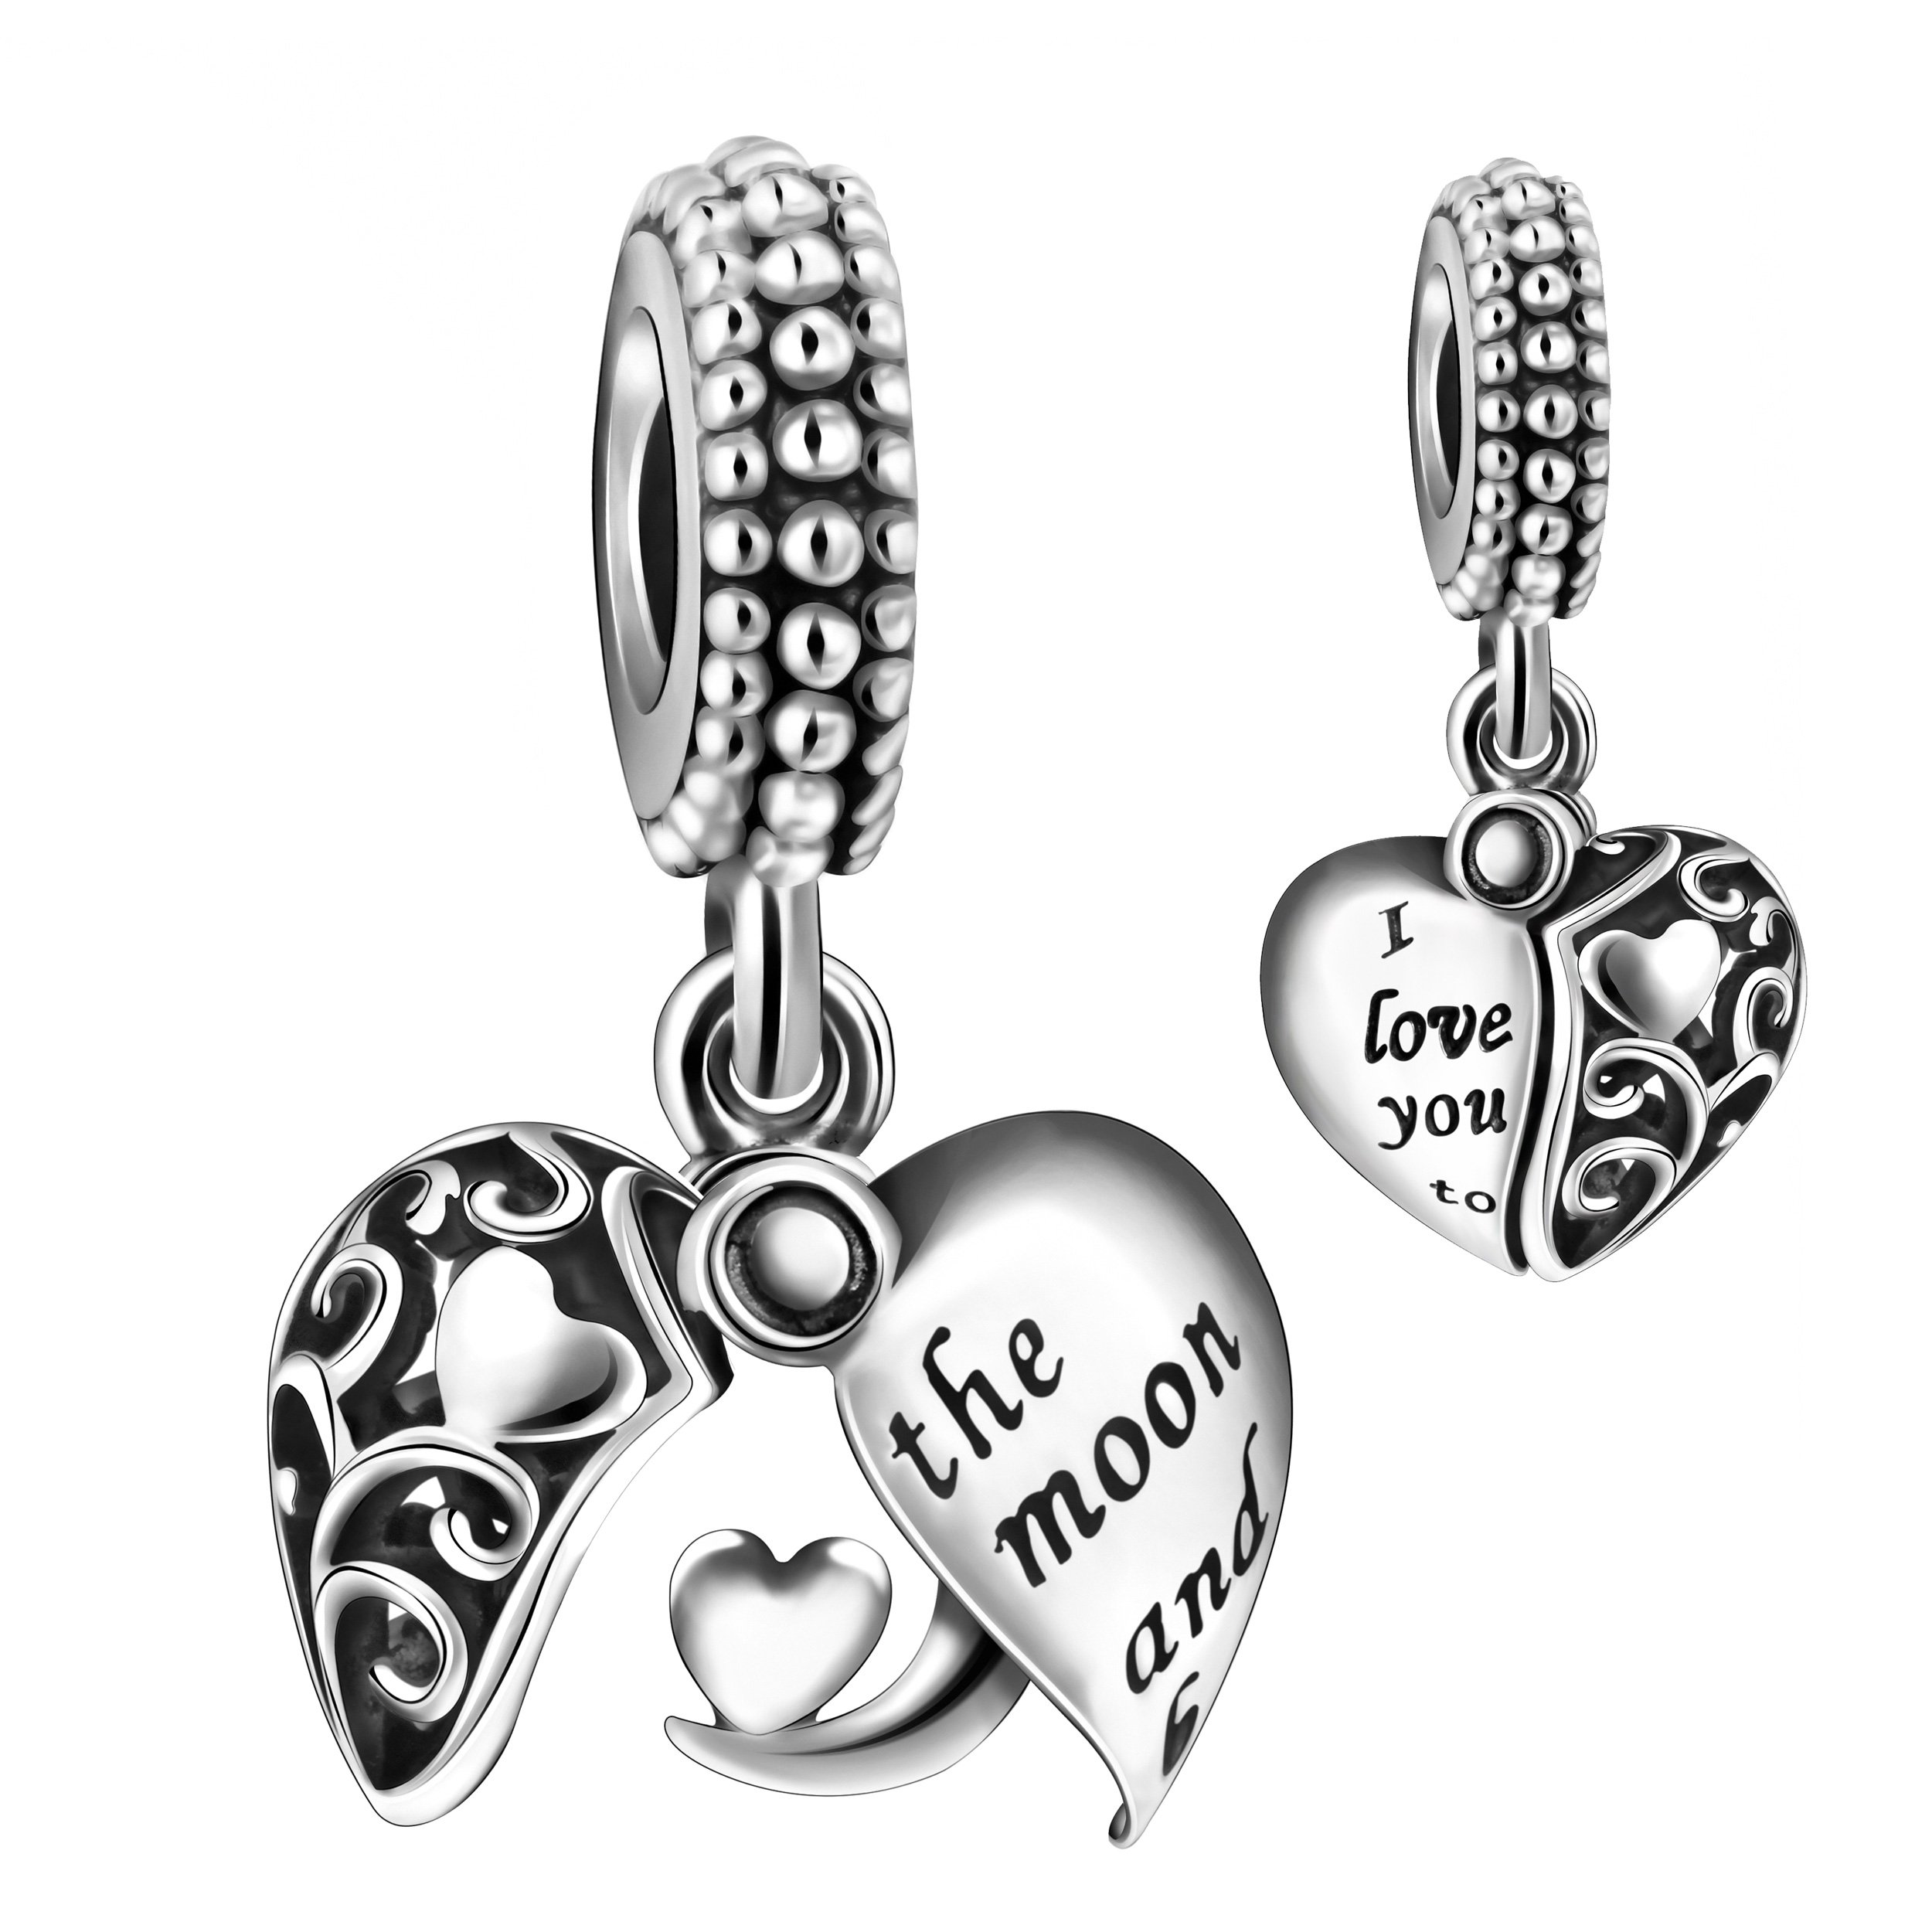 ANGEMIEL 925 Sterling Silver I Love You to The Moon & Back Heart Dangle Openwork Charms Bead for European Snake Chain Bracelets by ANGEMIEL